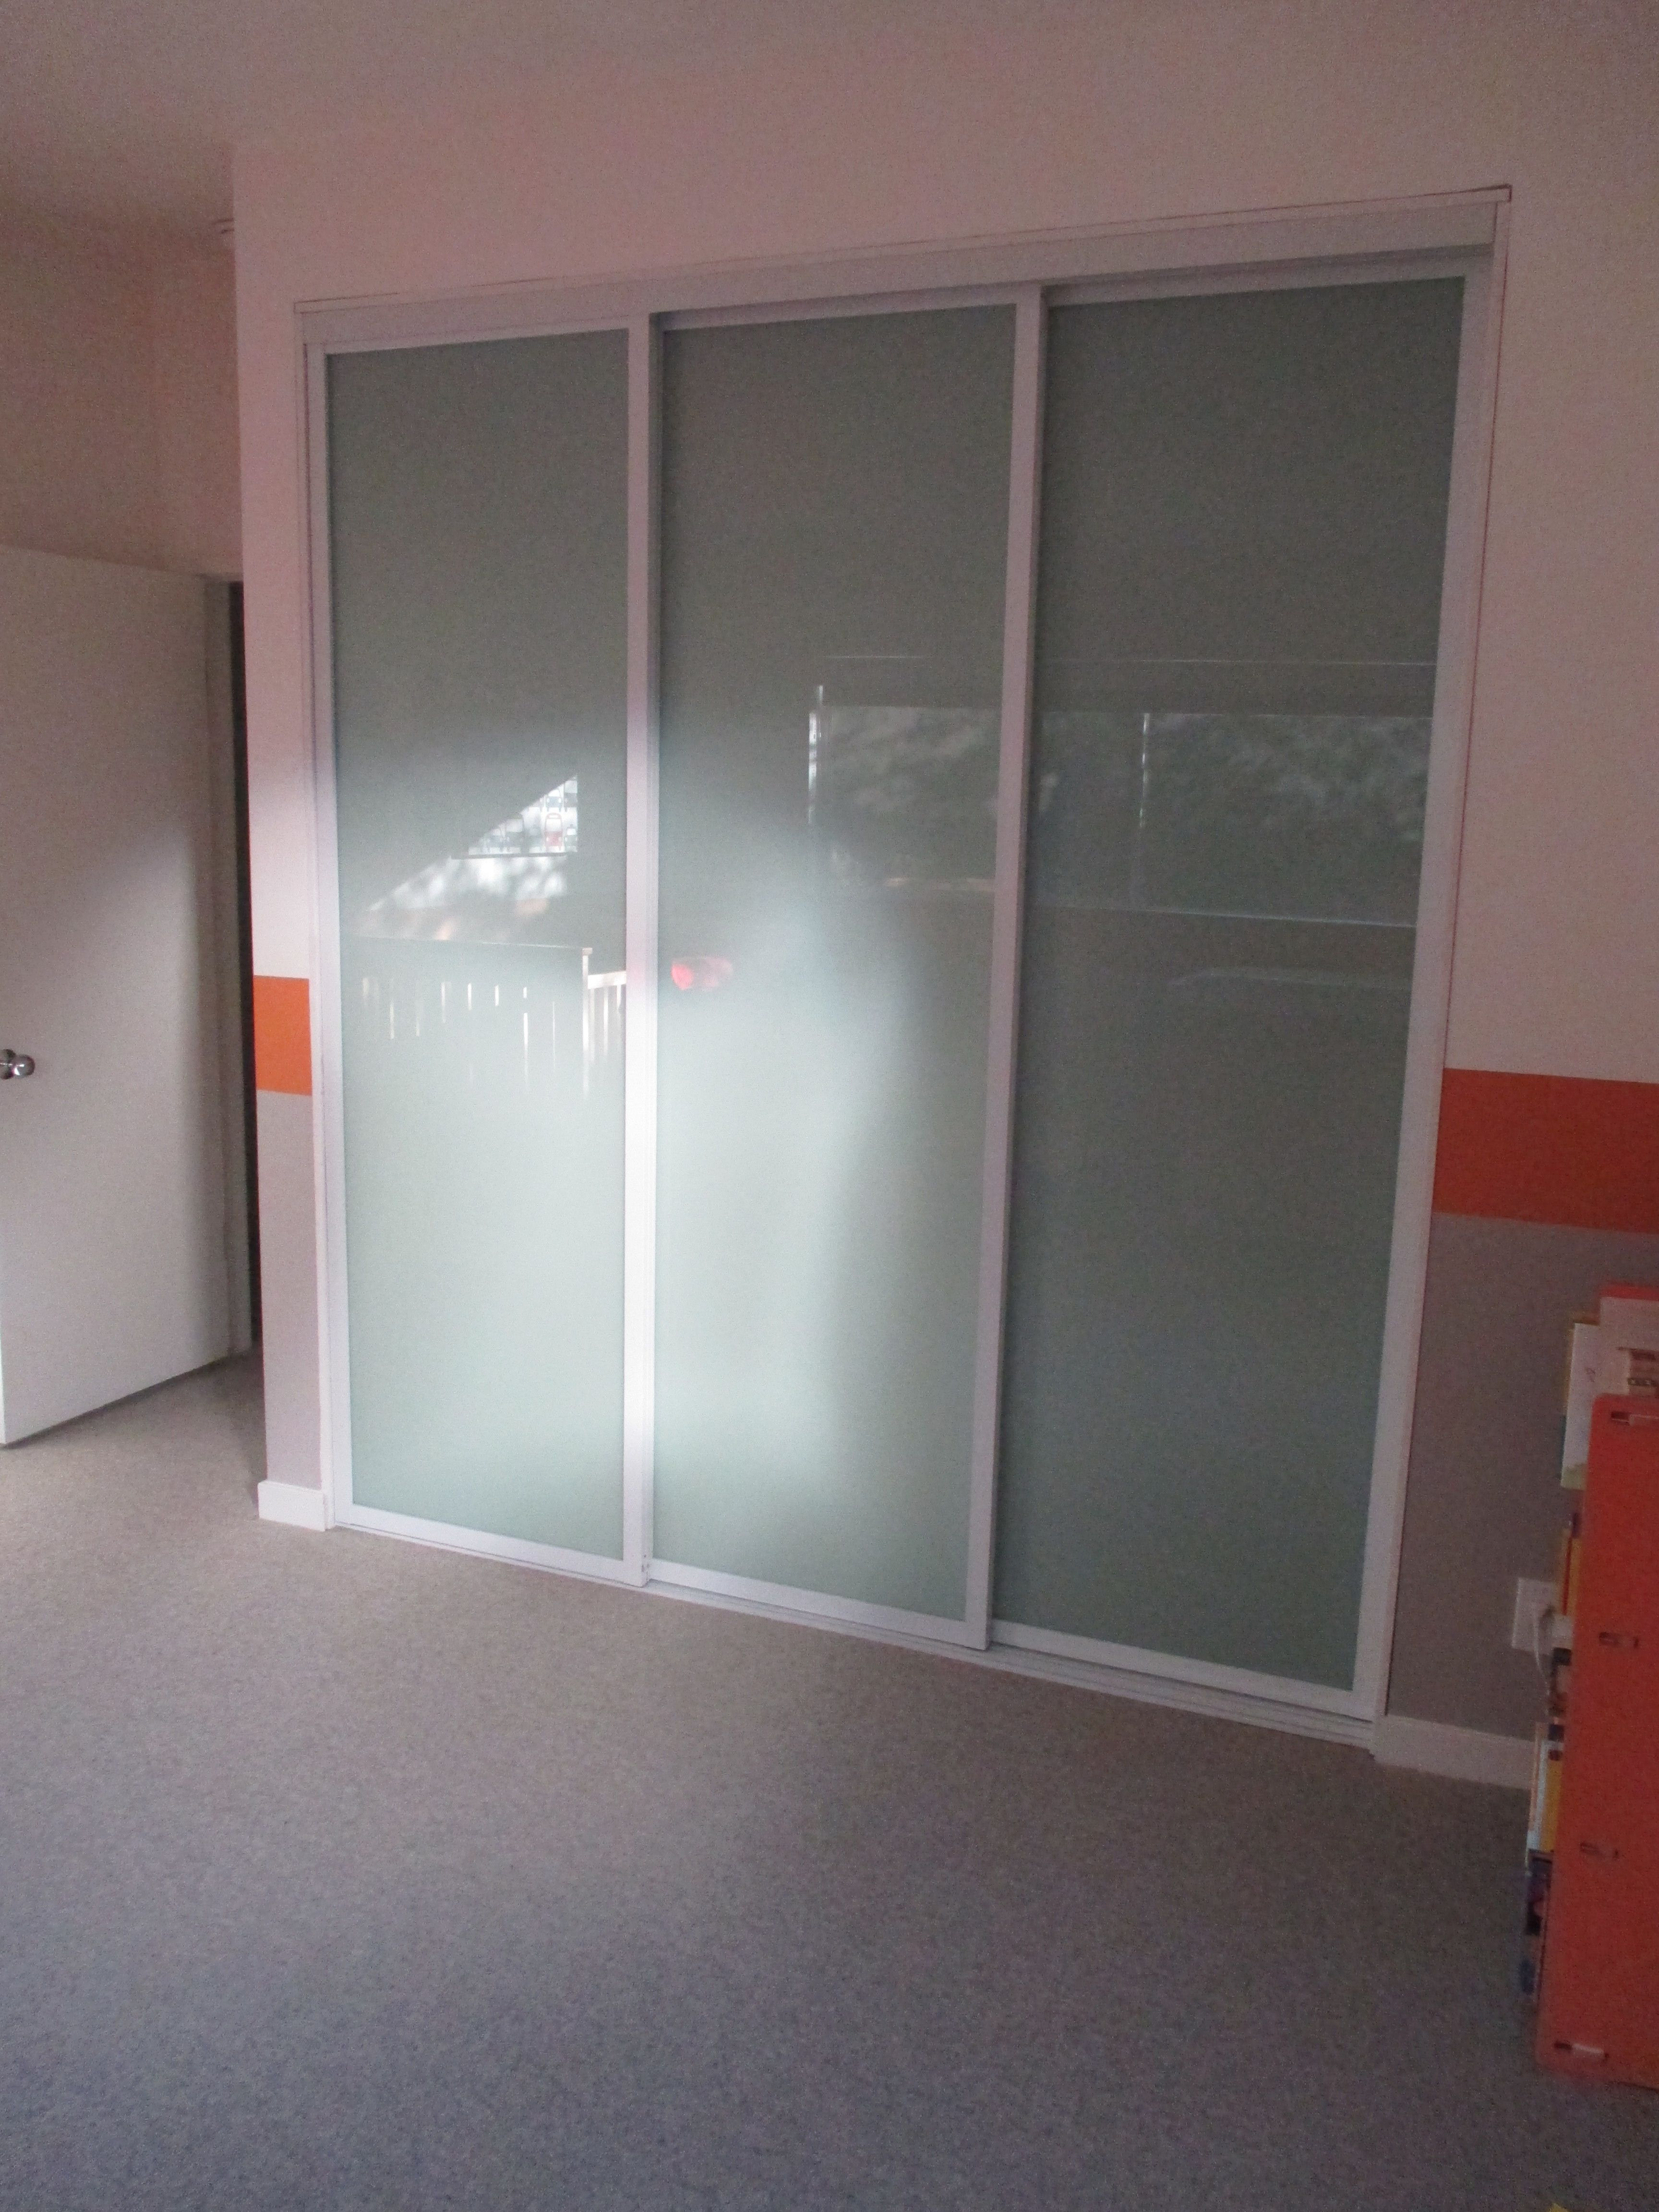 3 panel 3 track modern bypass closet door check out for Three panel sliding glass door